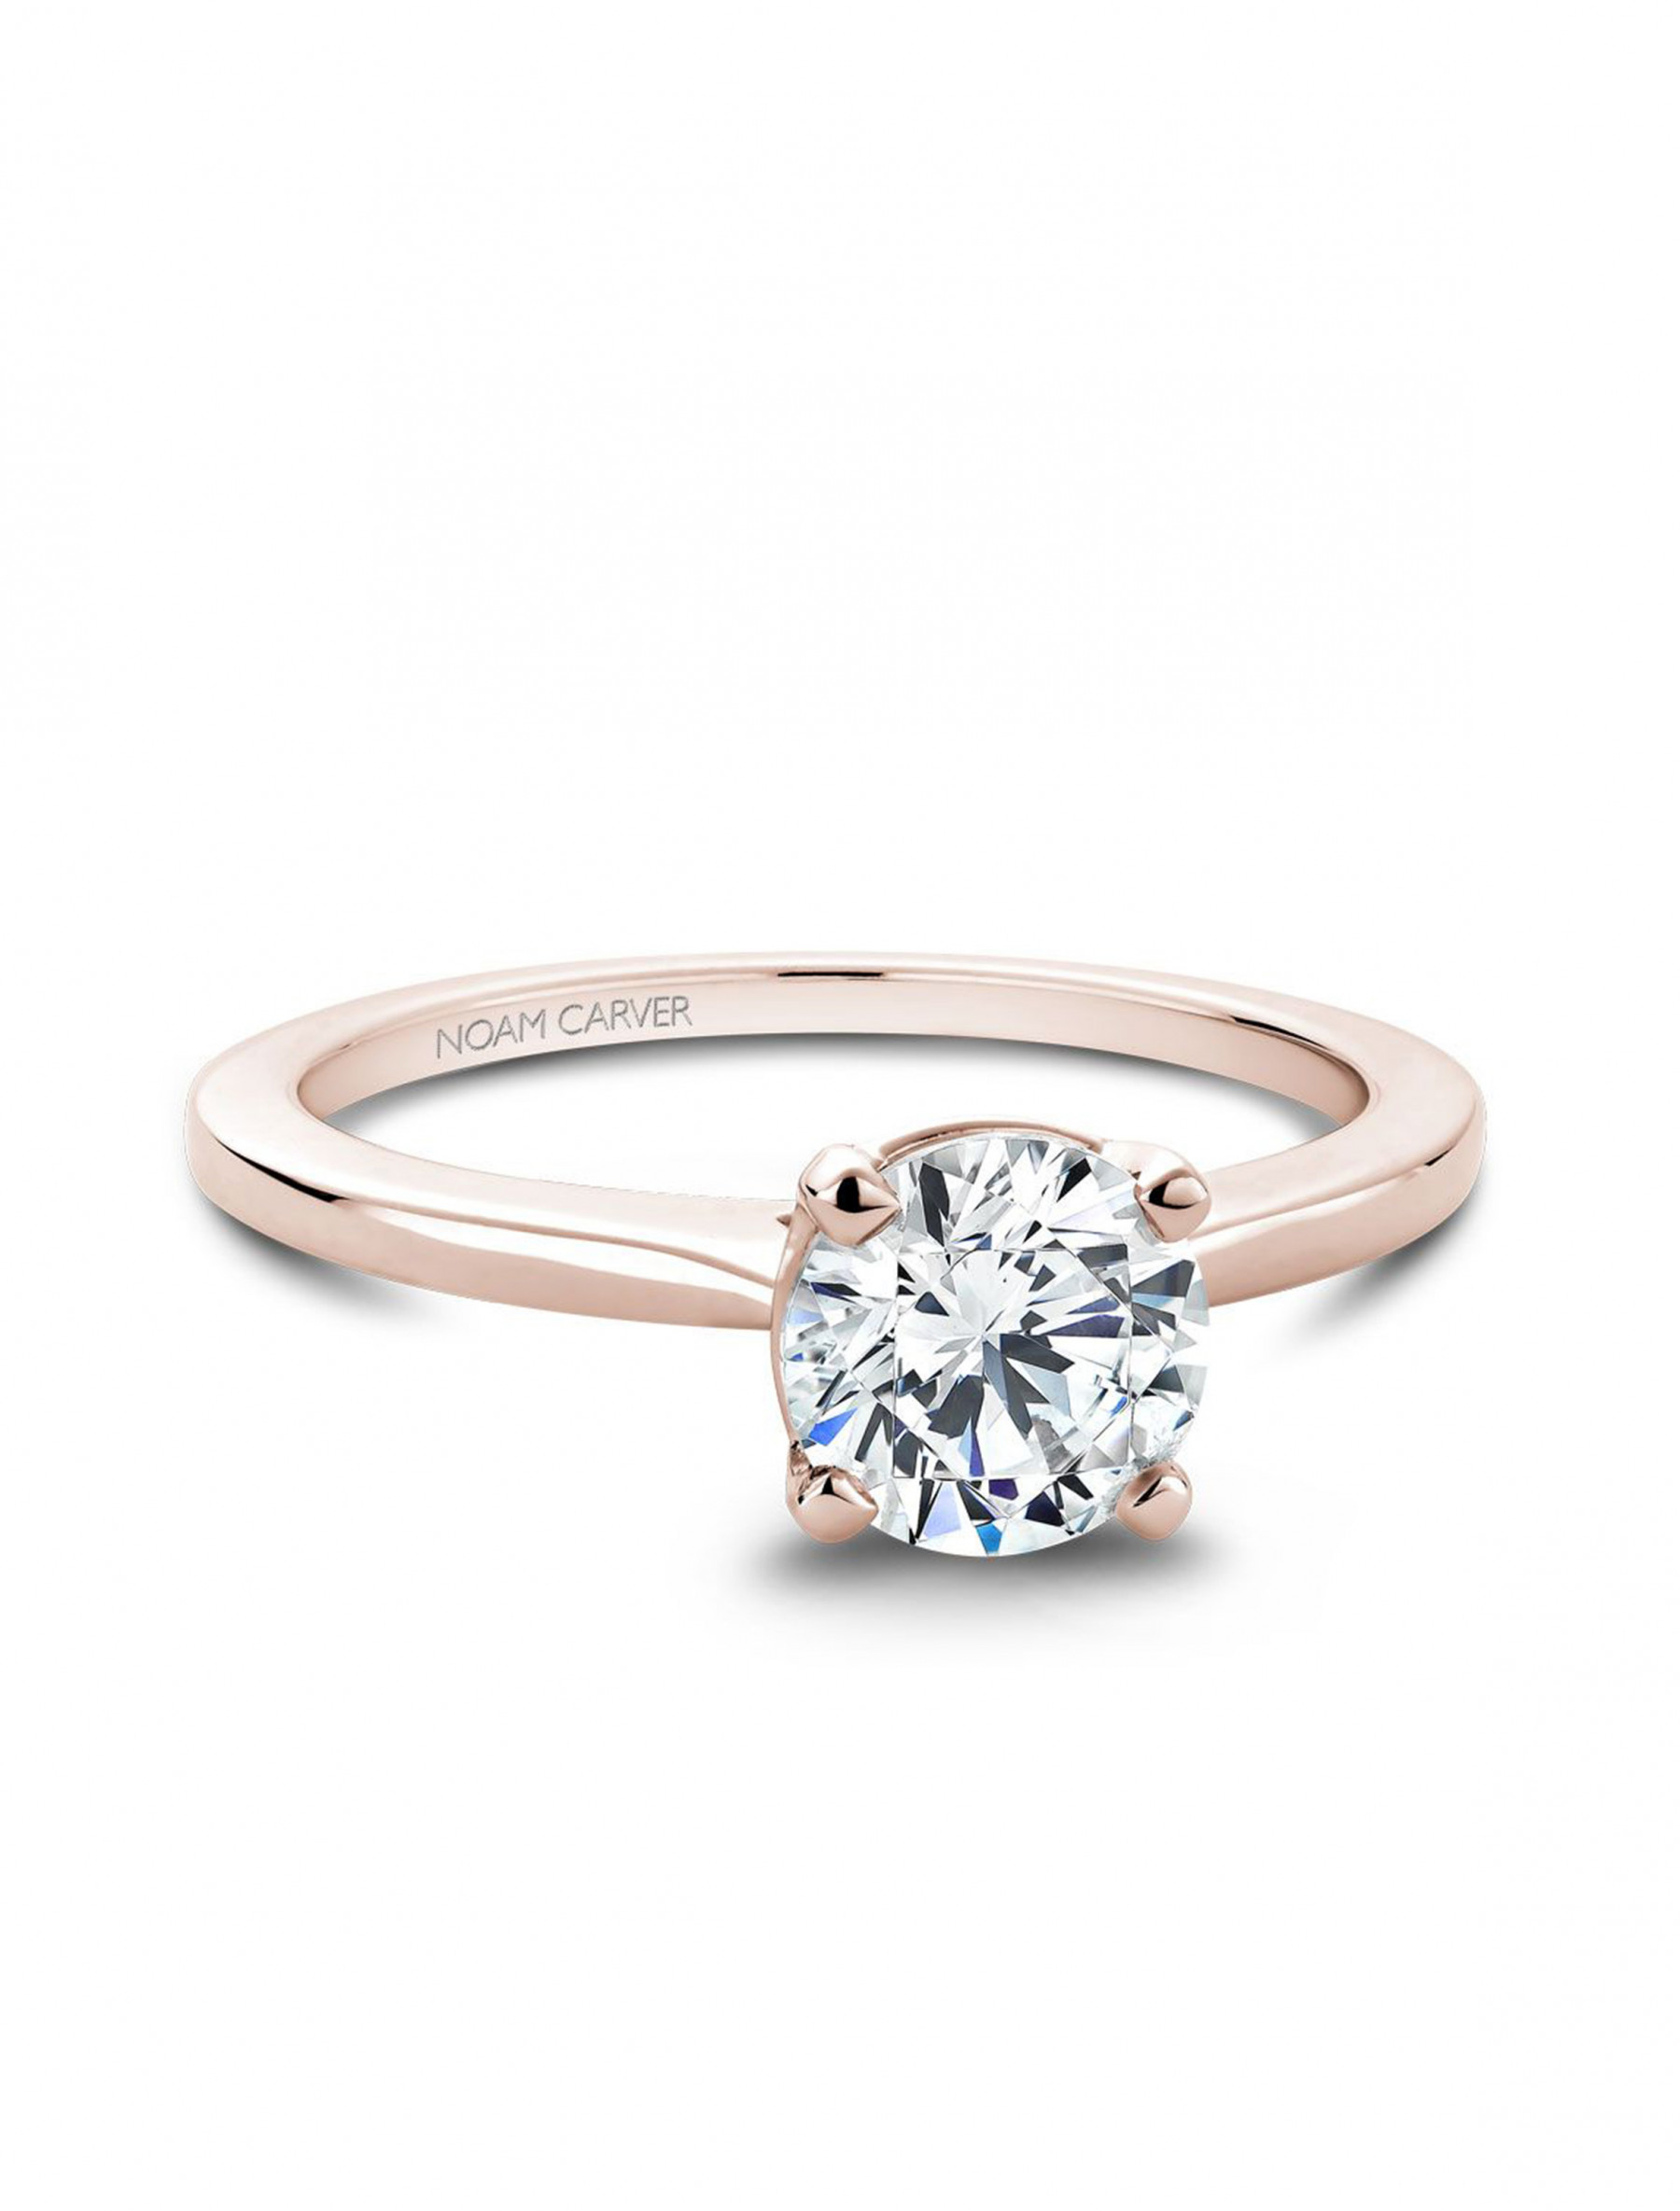 Noam Carver 14K Rose Gold Round Solitaire Engagement Ring Setting main view